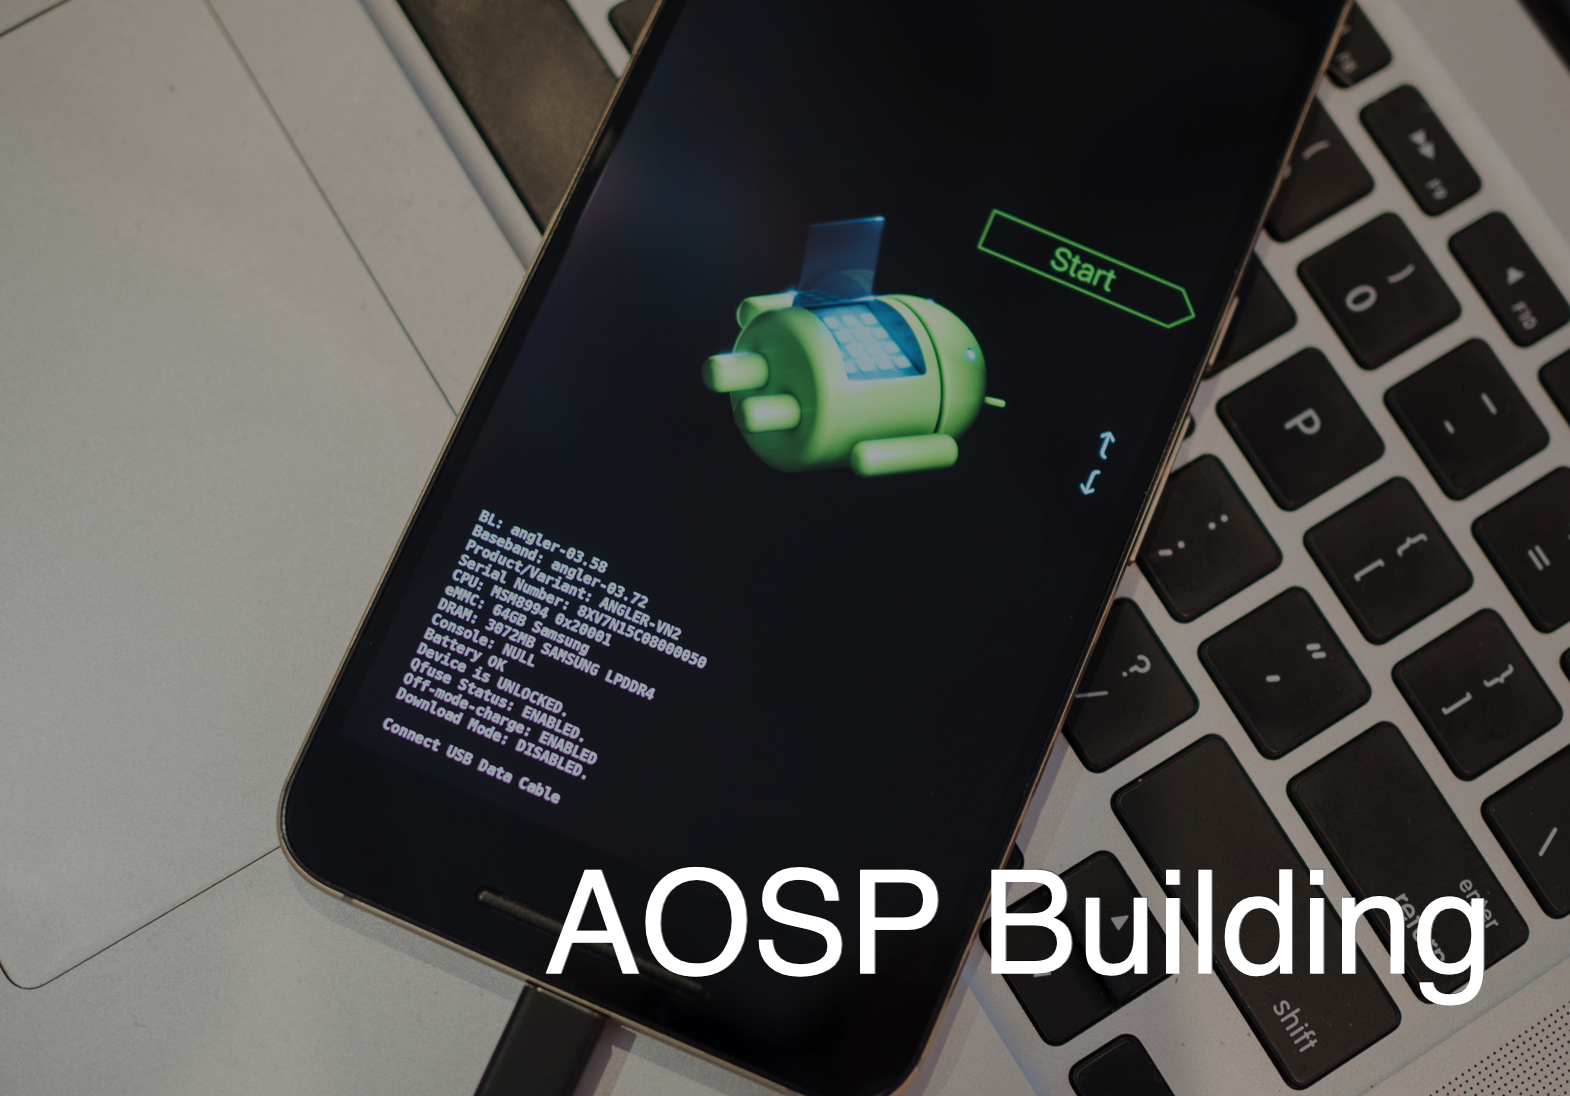 Building AOSP, fastbooting on a device - Soham Bhattacharya